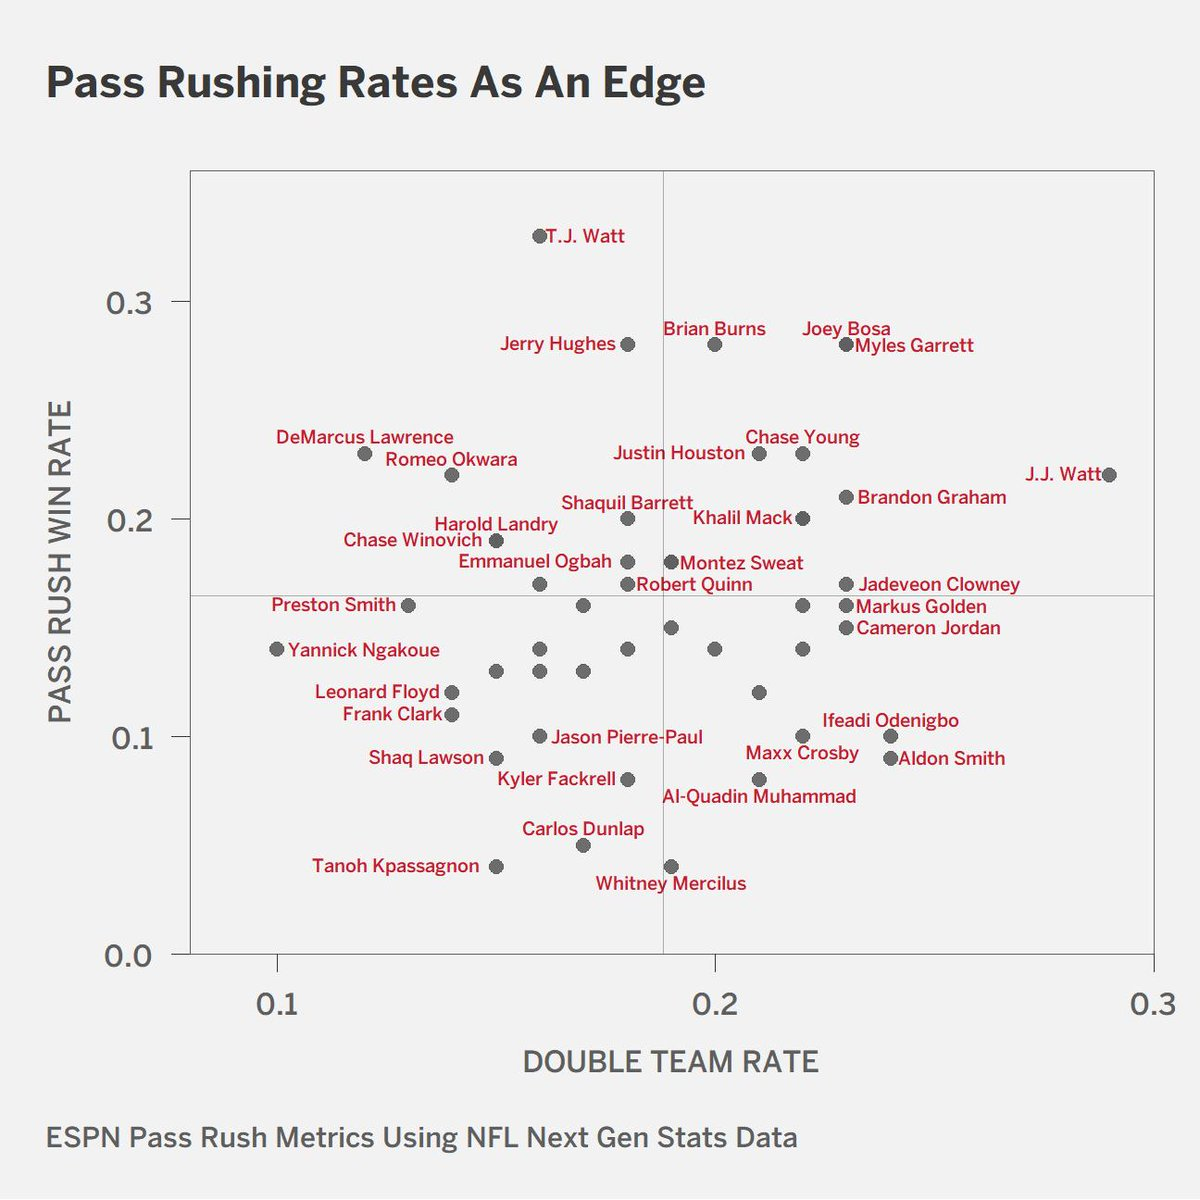 Double team rate as an edge (x) by pass rush win rate as an edge (y).   Note that y axis is overall PRWR as an edge, not just vs. double teams.  Both categories led by a Watt brother: J.J. is doubled more than anyone else, T.J. wins more than anyone else. https://t.co/aC9NUuXhbj